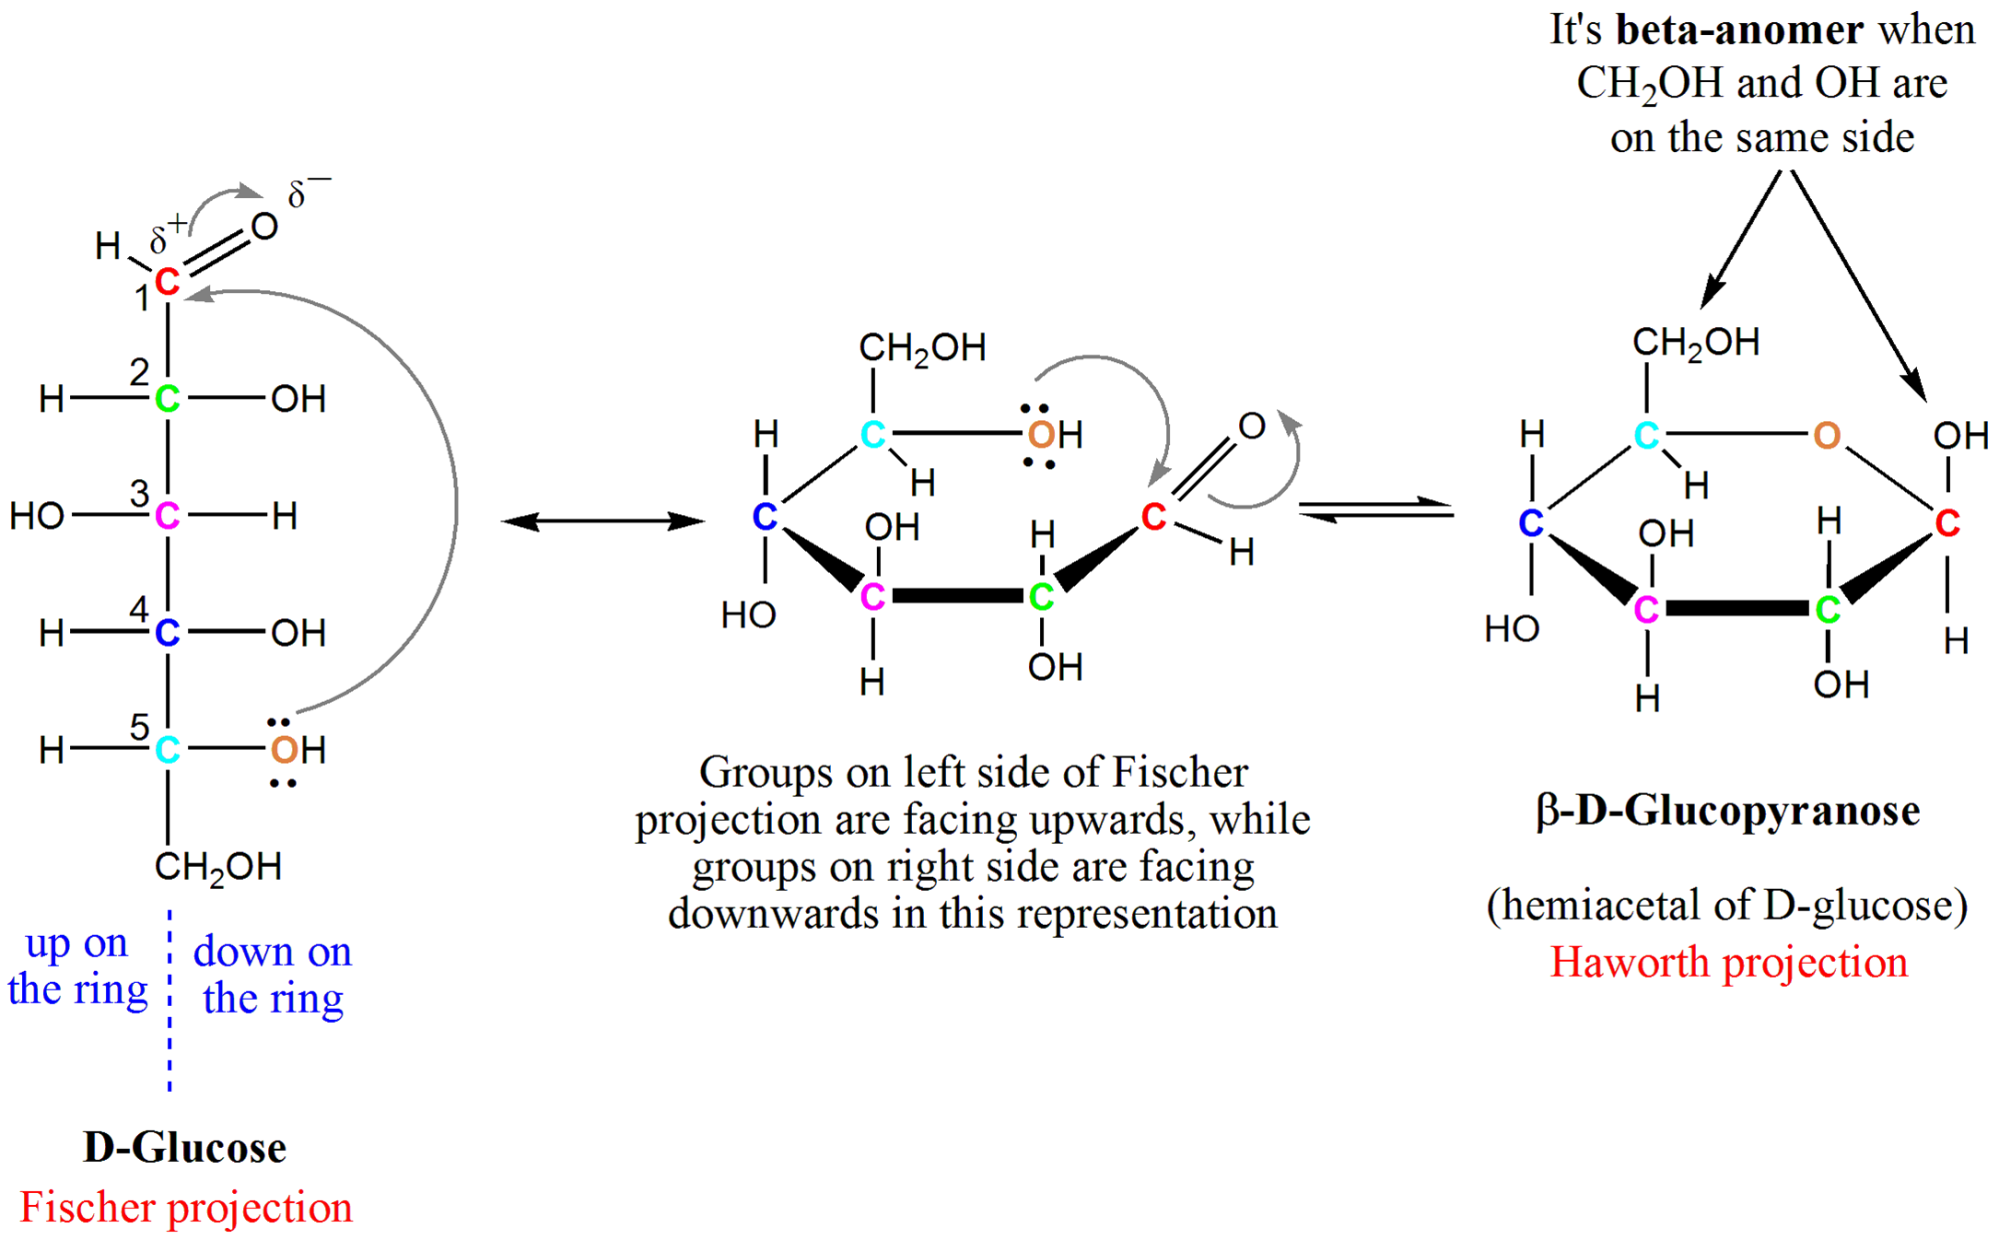 hight resolution of diagram showing how to form a hemiacetyl of glucose from its original open form seen